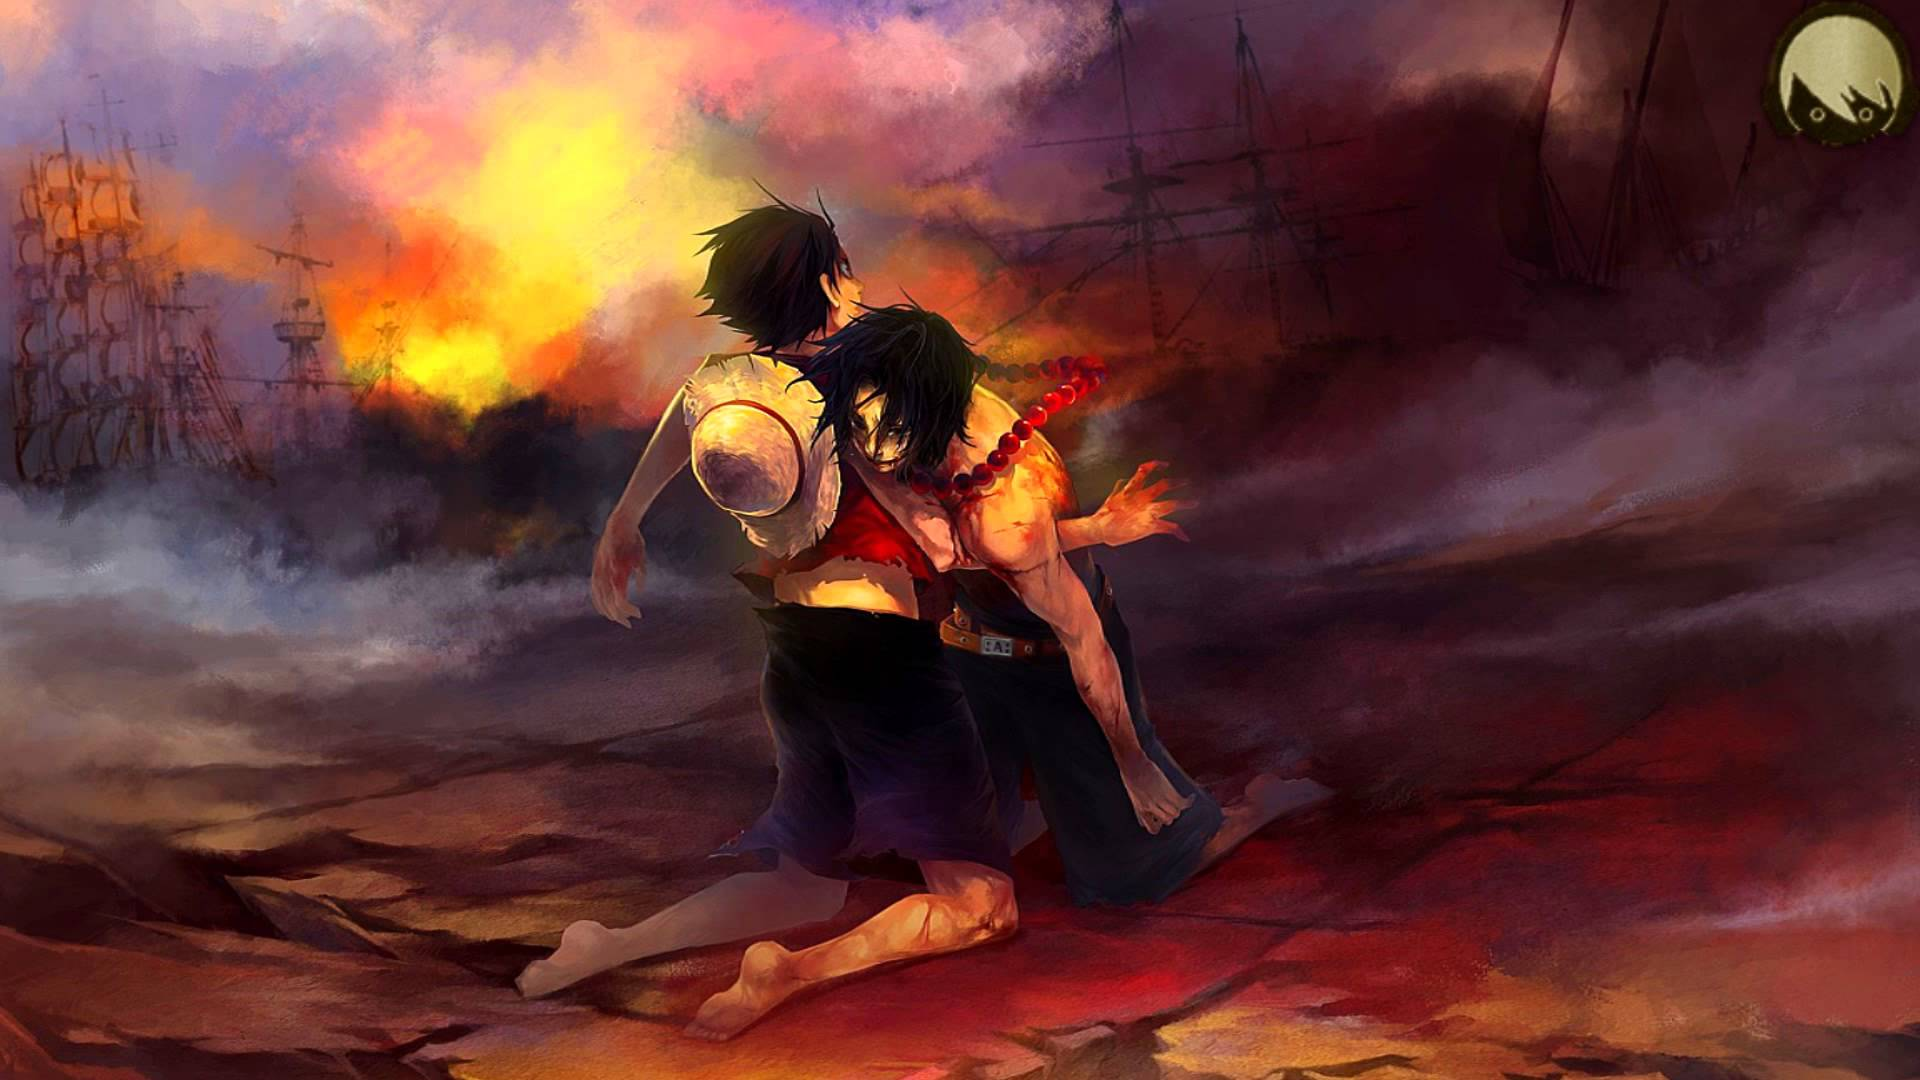 Epic One Piece Wallpapers Hd Wallpaper Cave